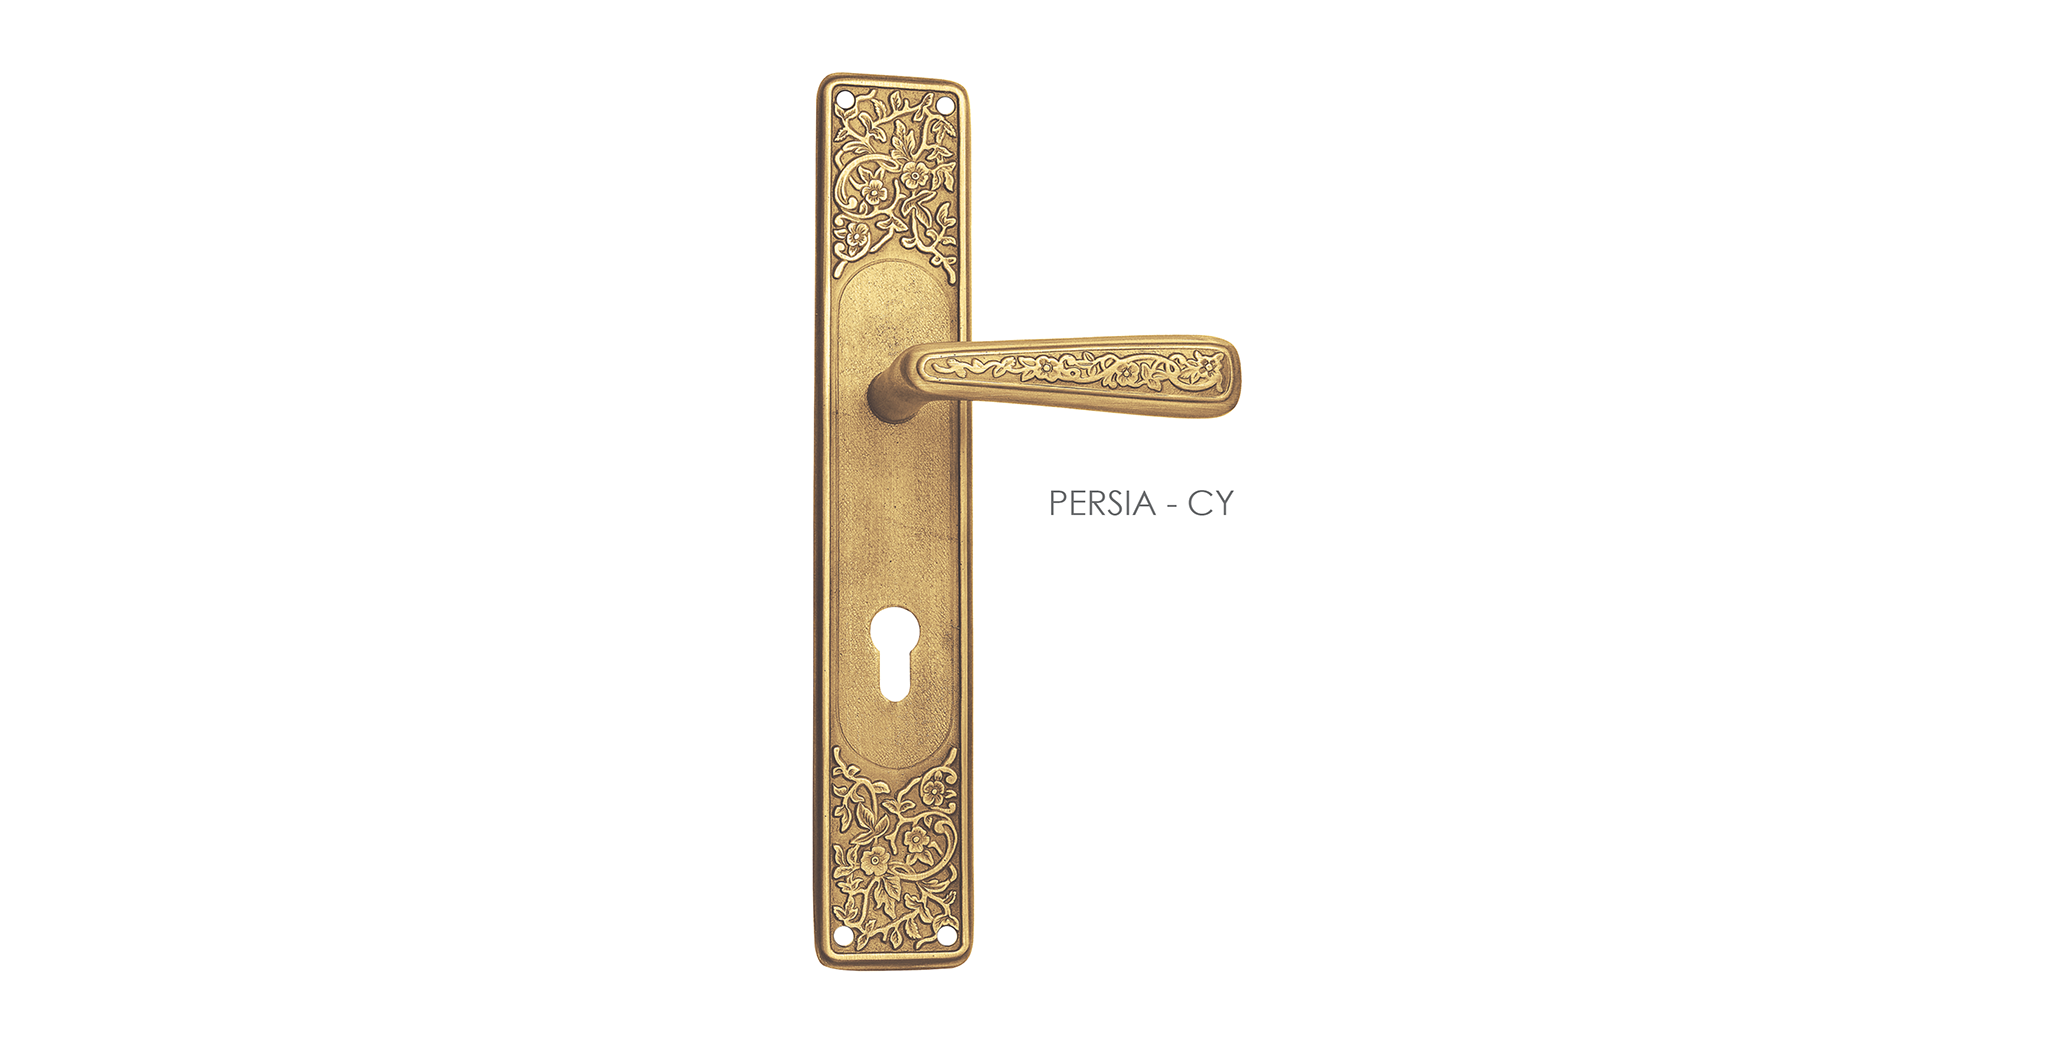 French Mortise Door Handle On Plate For Villa